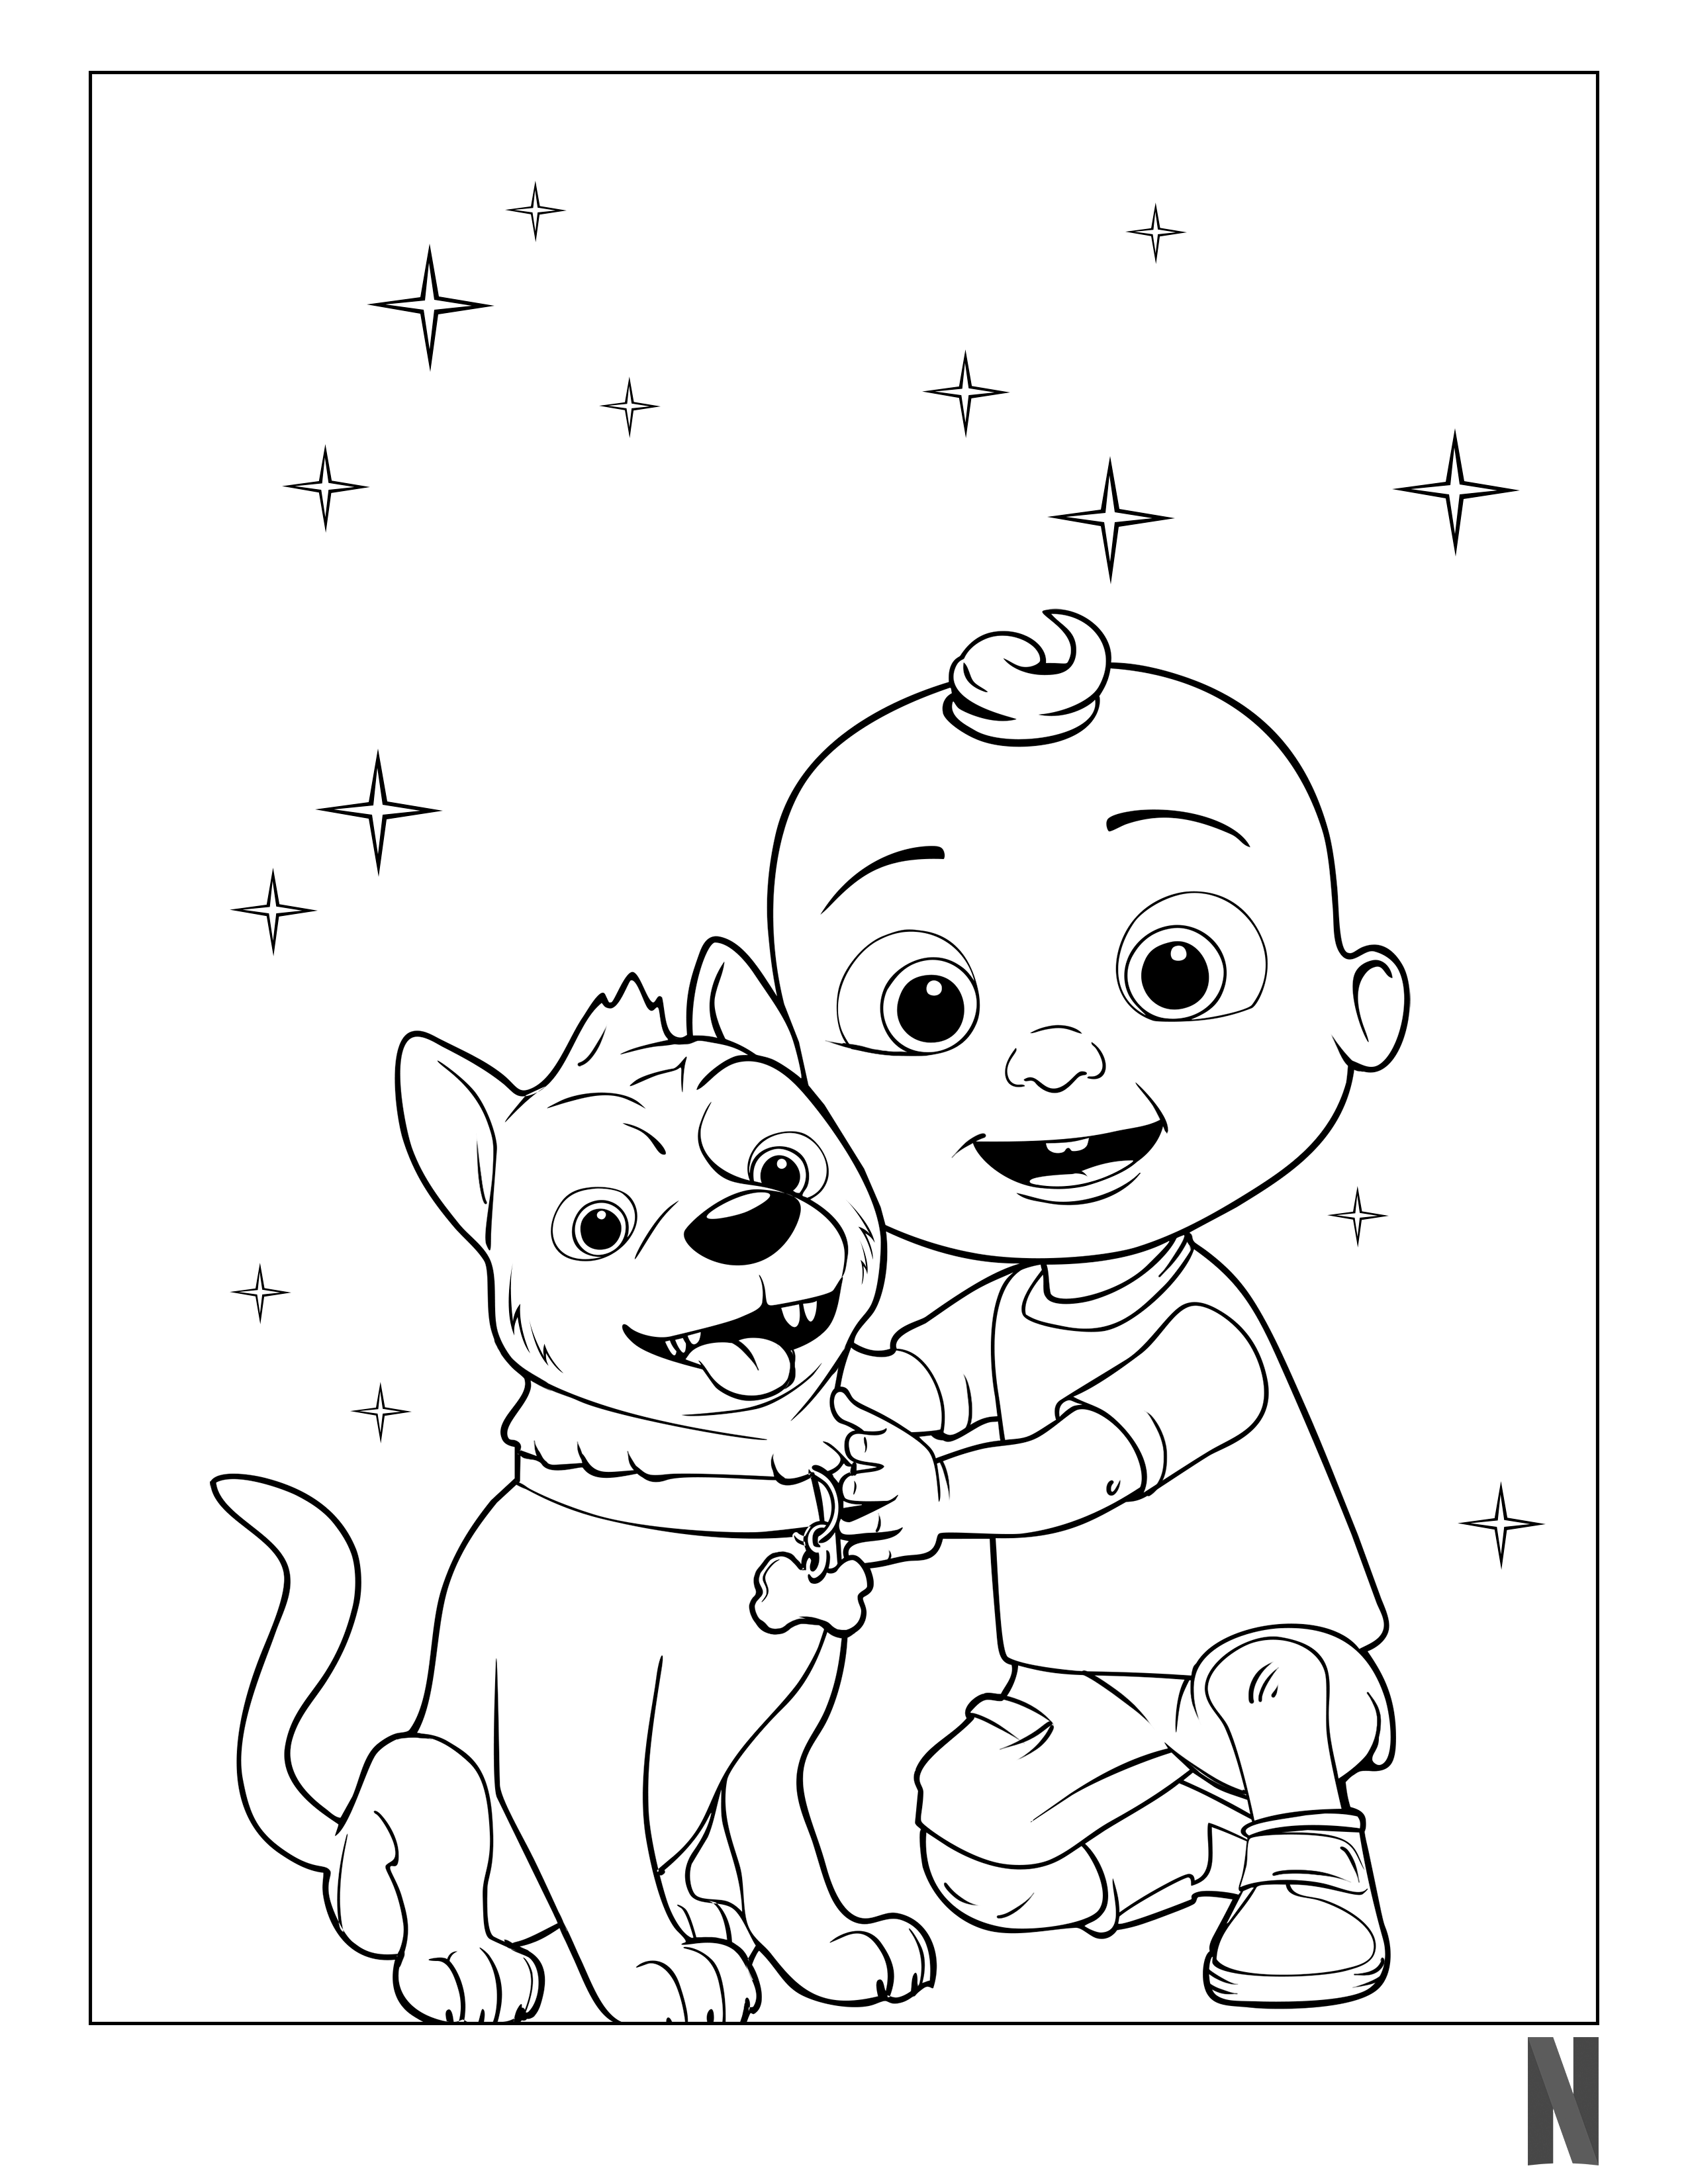 Cocomelon Coloring Page in 2020 | Coloring pages, Character, Print